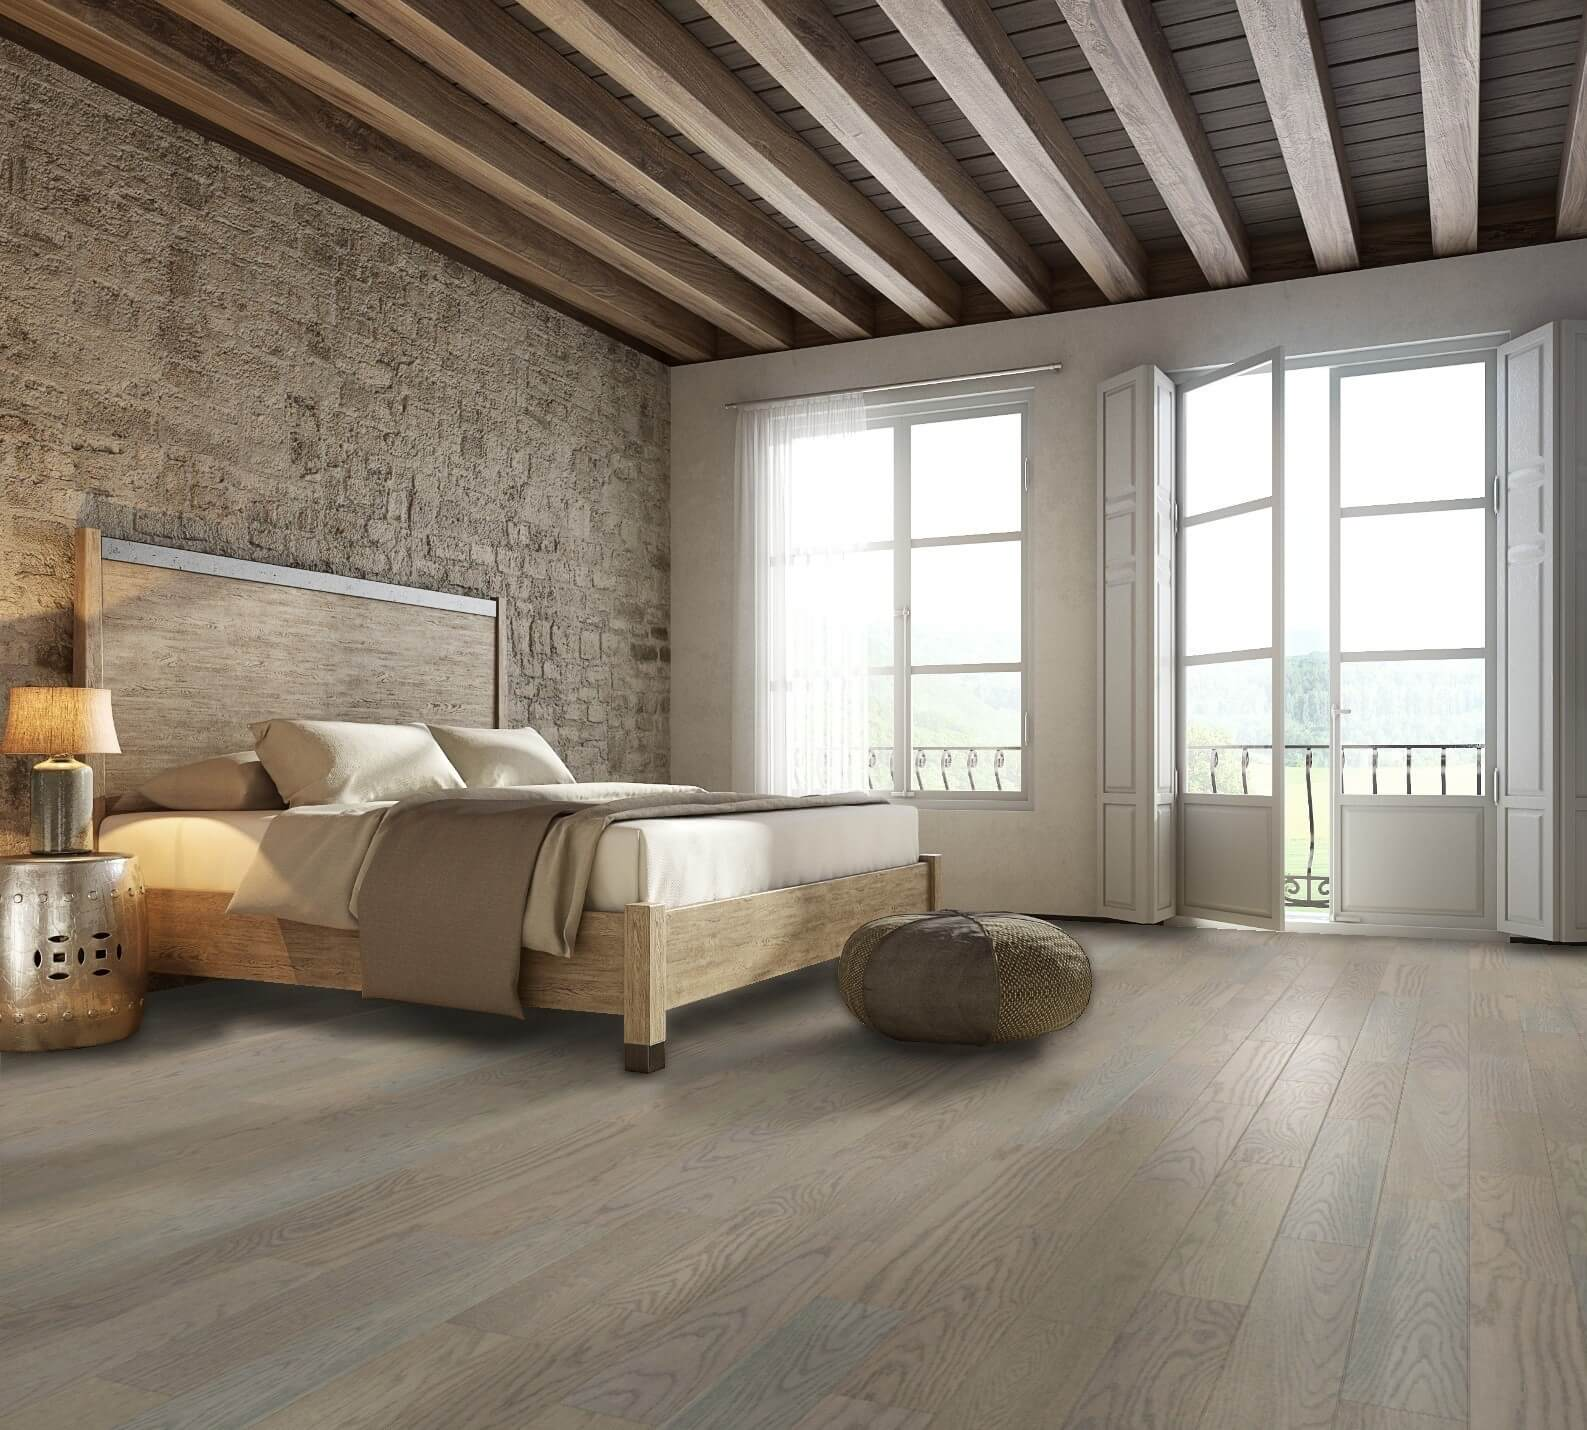 What Are the Limitations of Engineered Hardwood Flooring?